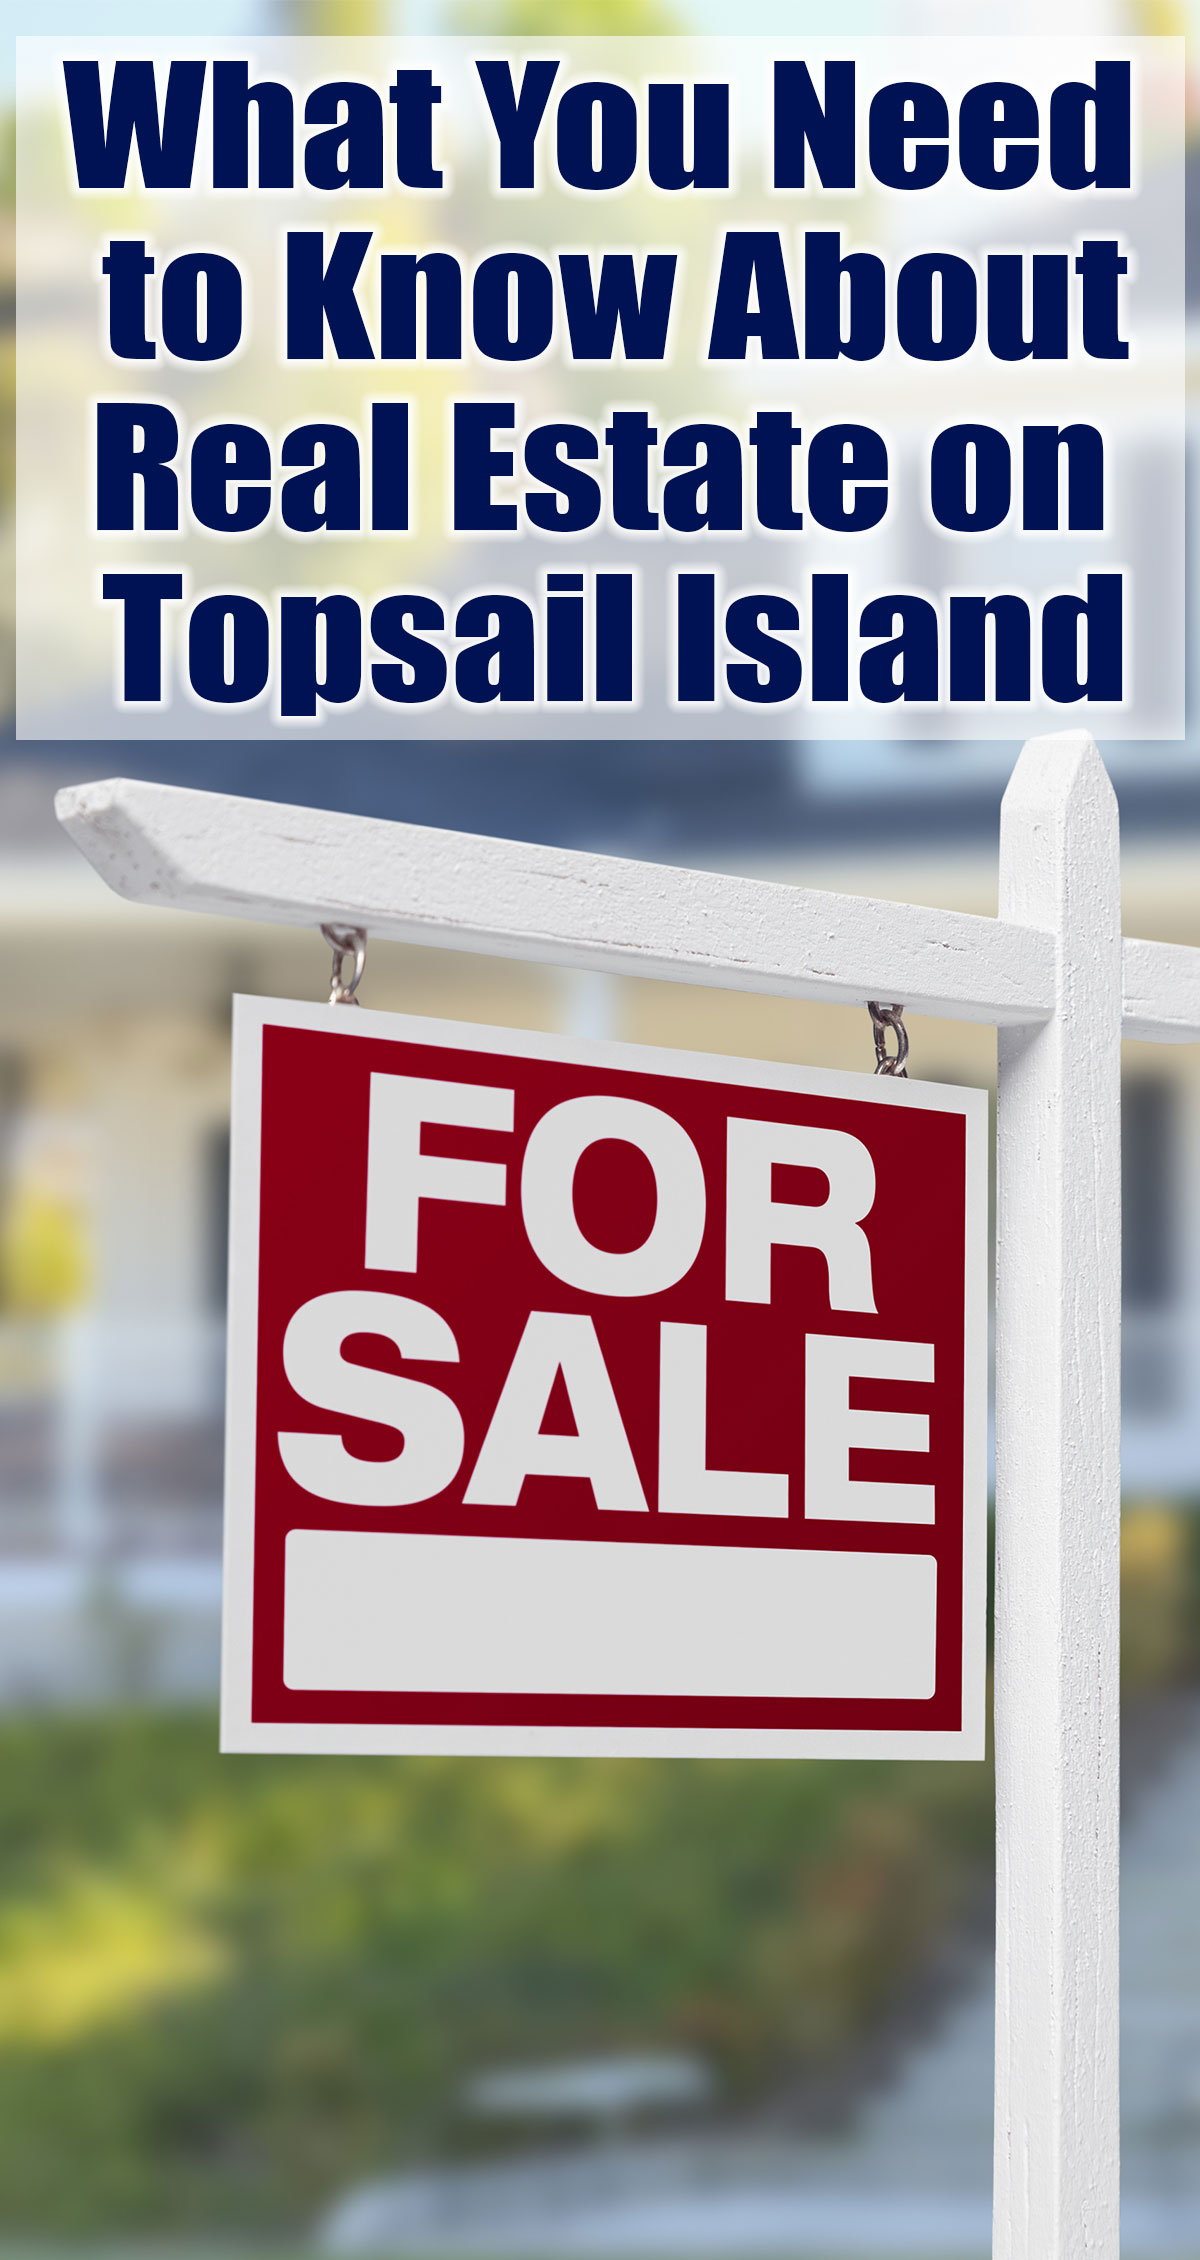 What You Need to Know About Real Estate on Topsail Island